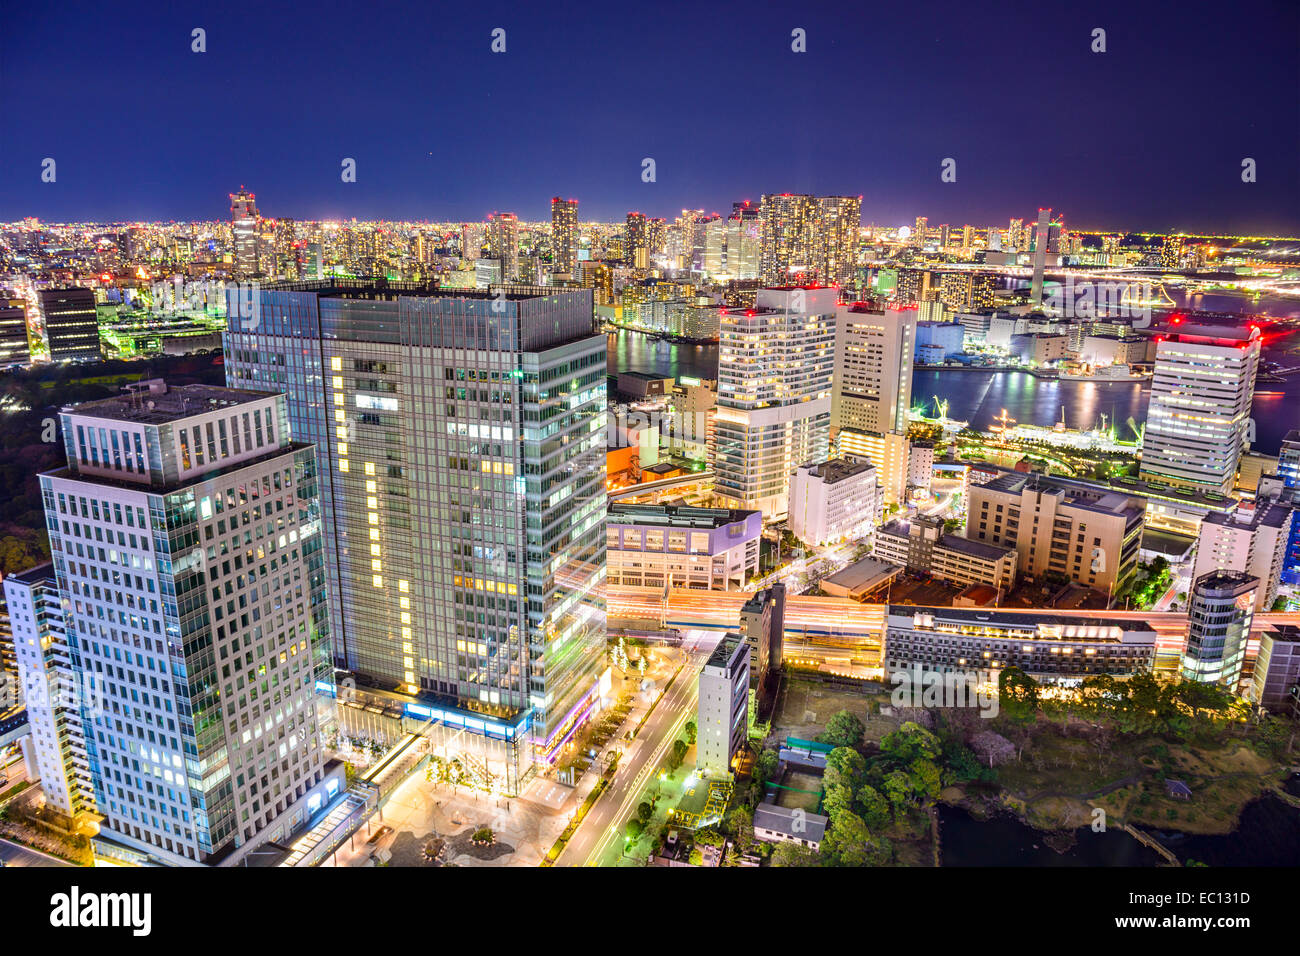 Tokyo, Japan cityscape at night. - Stock Image